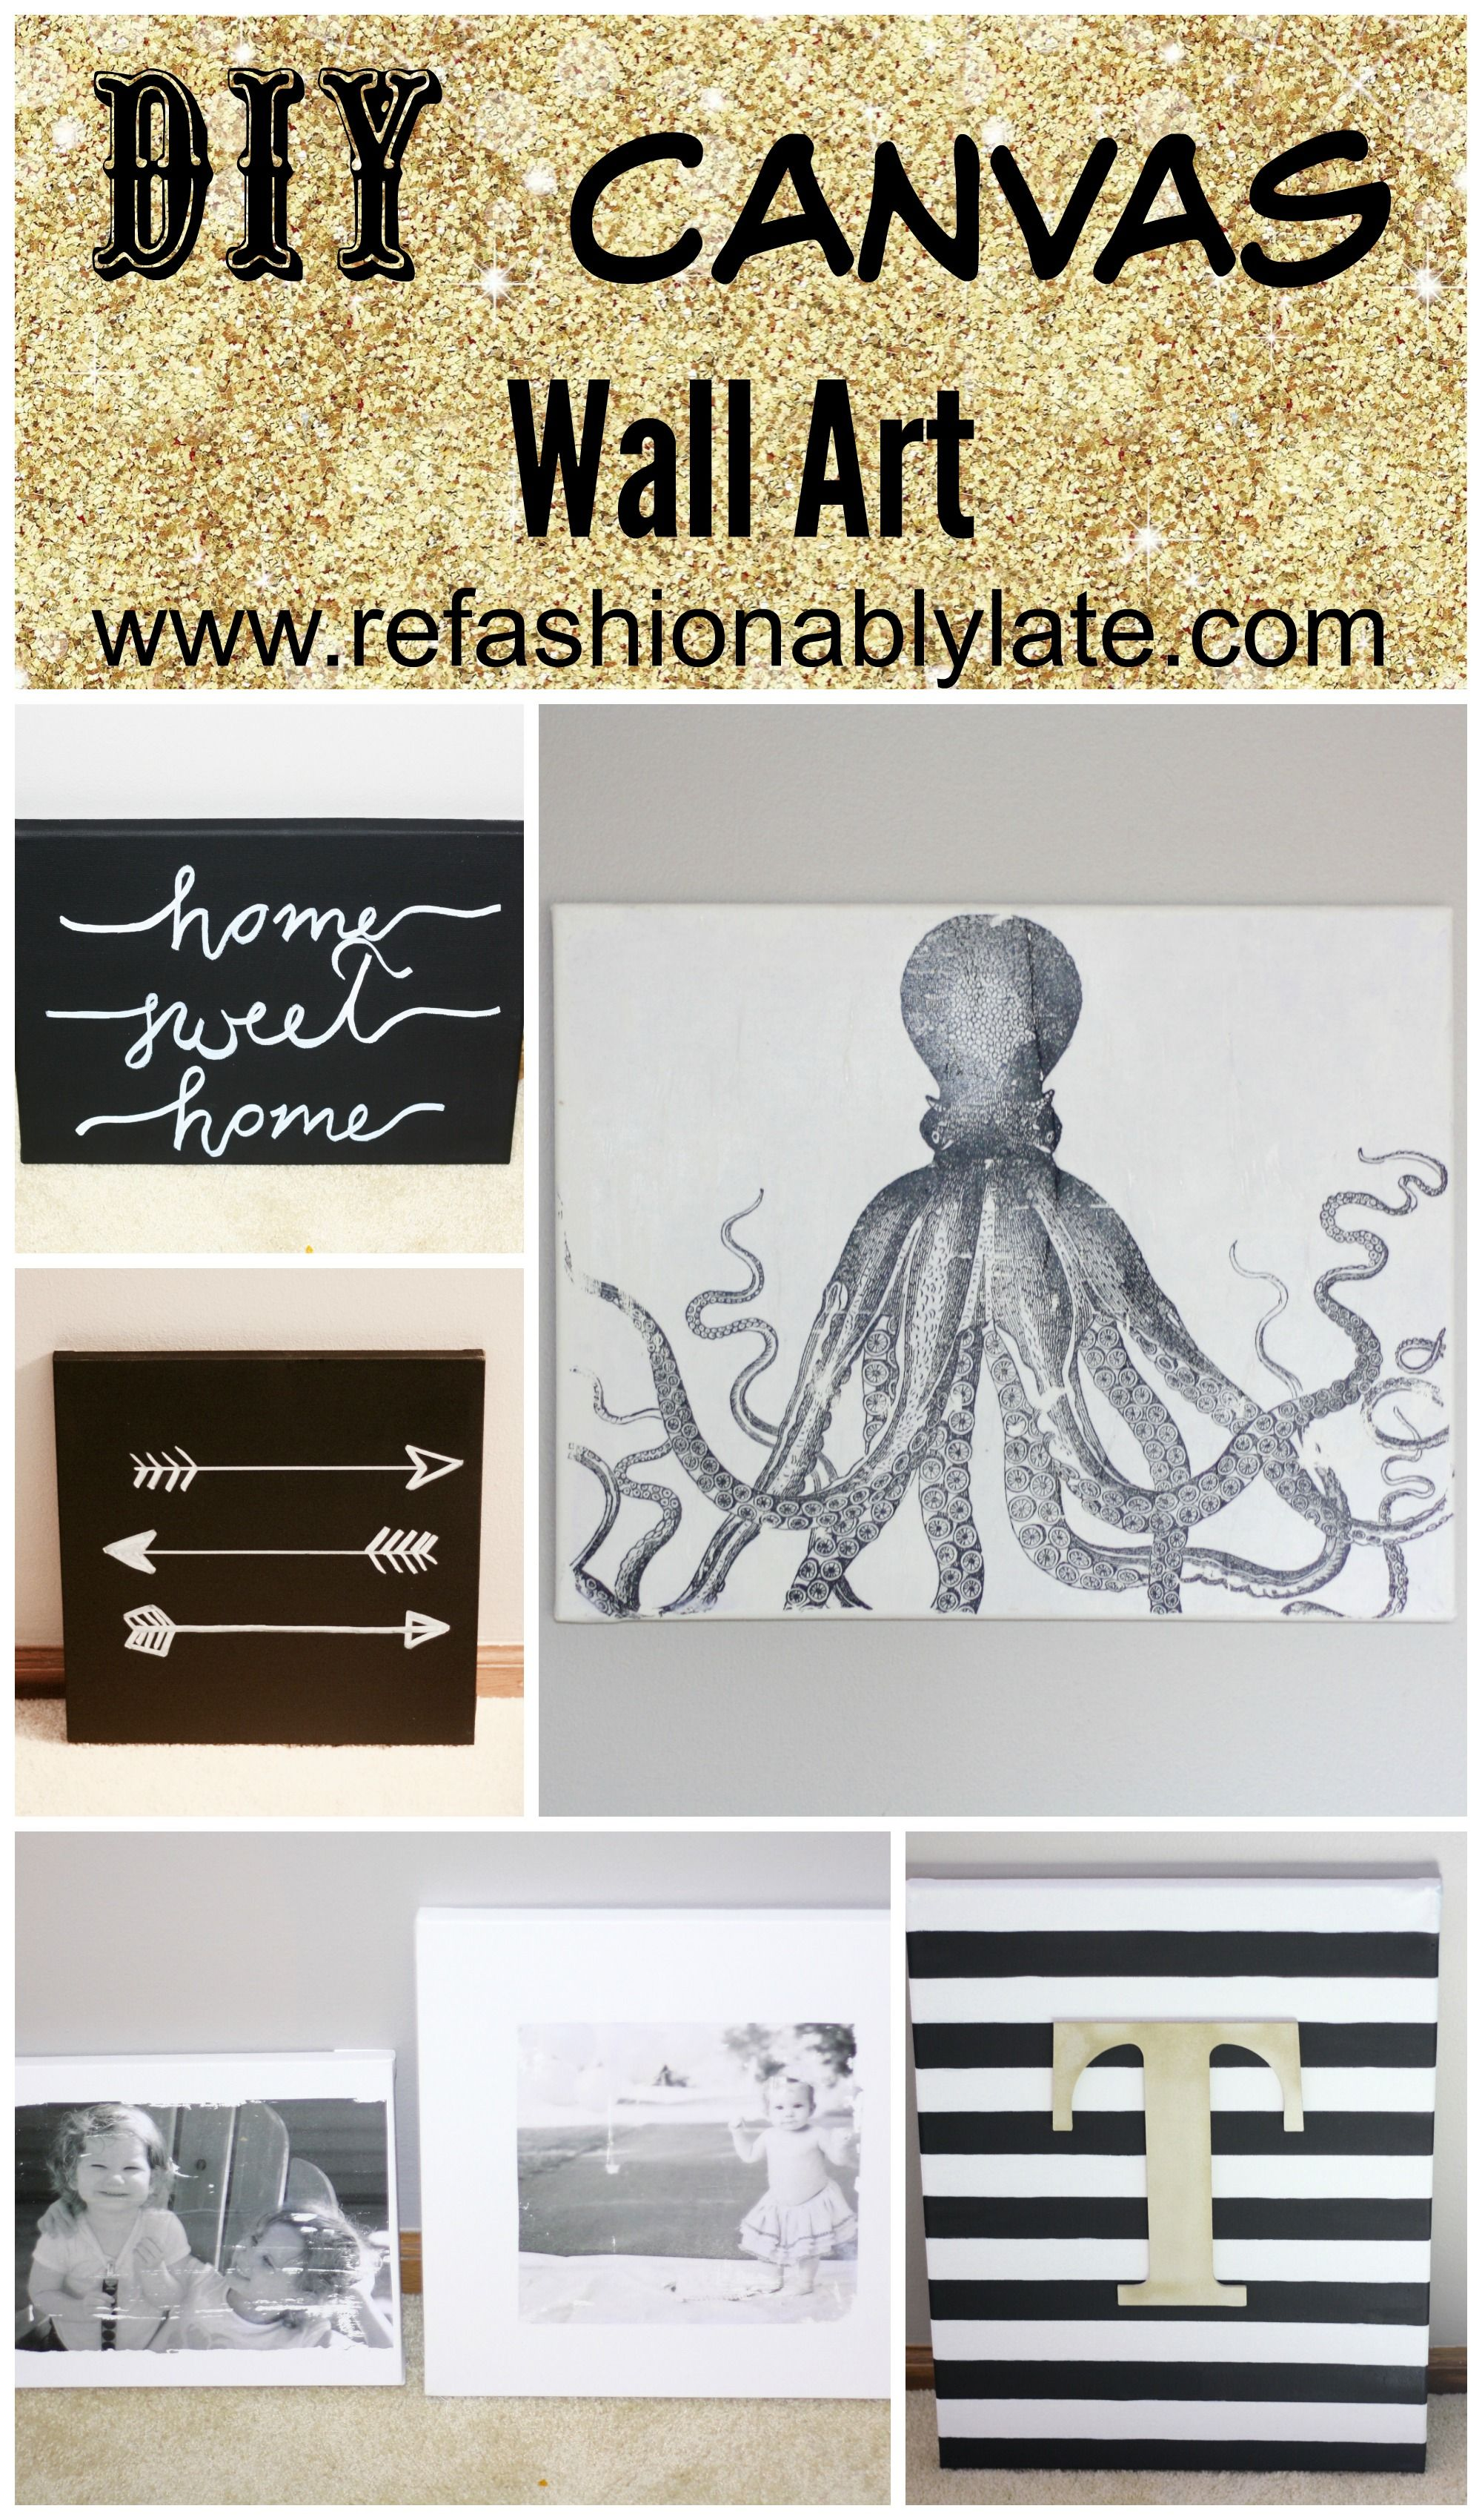 DIY Canvas Wall Art!  Create various designs on canvas to create a beautiful gallery wall! - www.refashionablylate.com